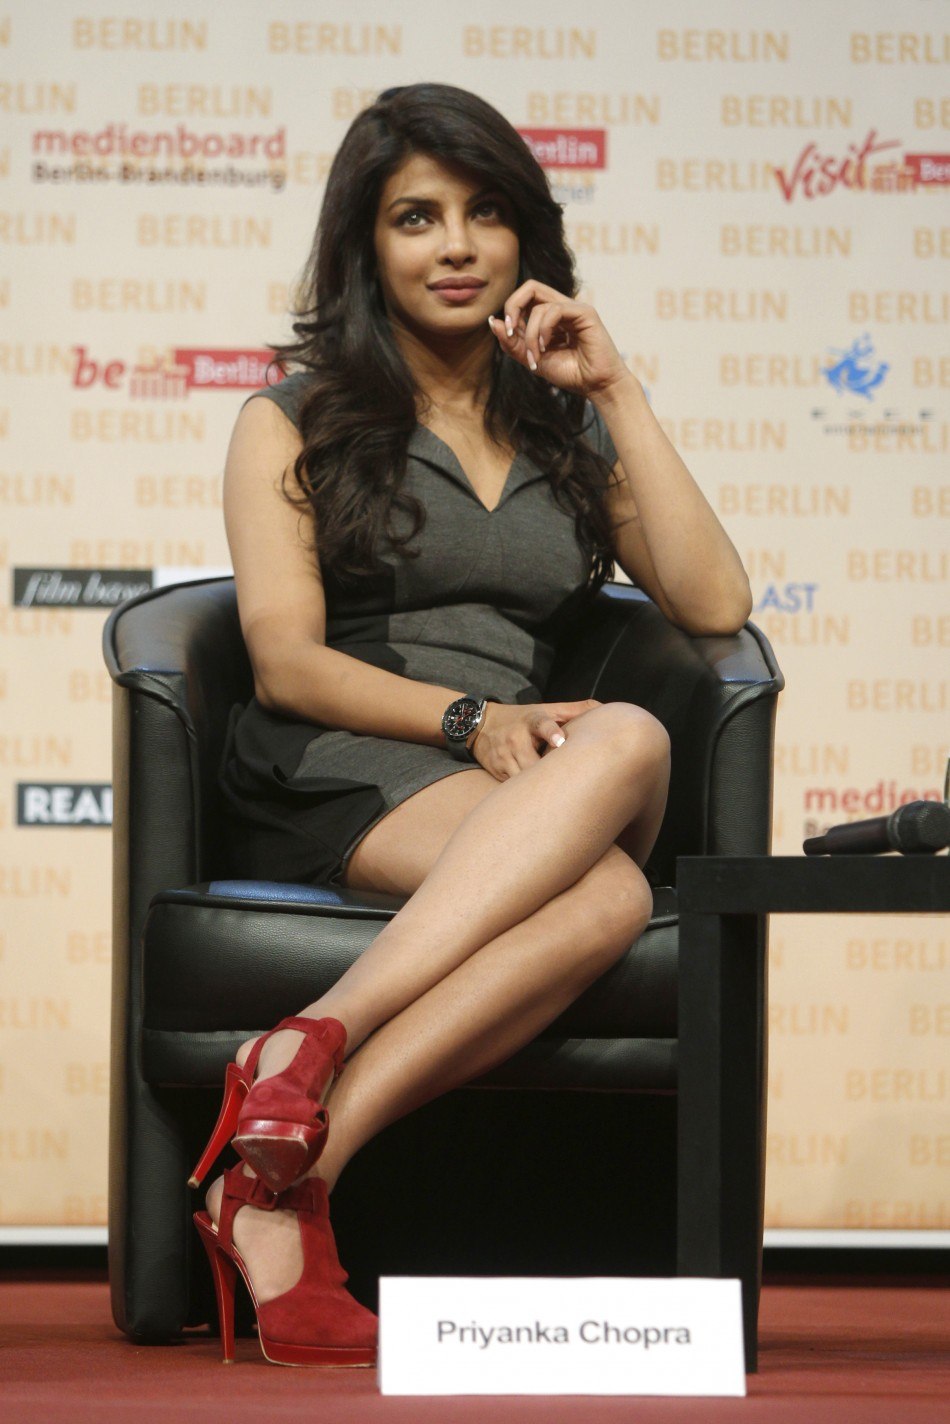 """Indian actress Chopra attends a news conference to promote her movie """"Don-2"""" in Berlin"""